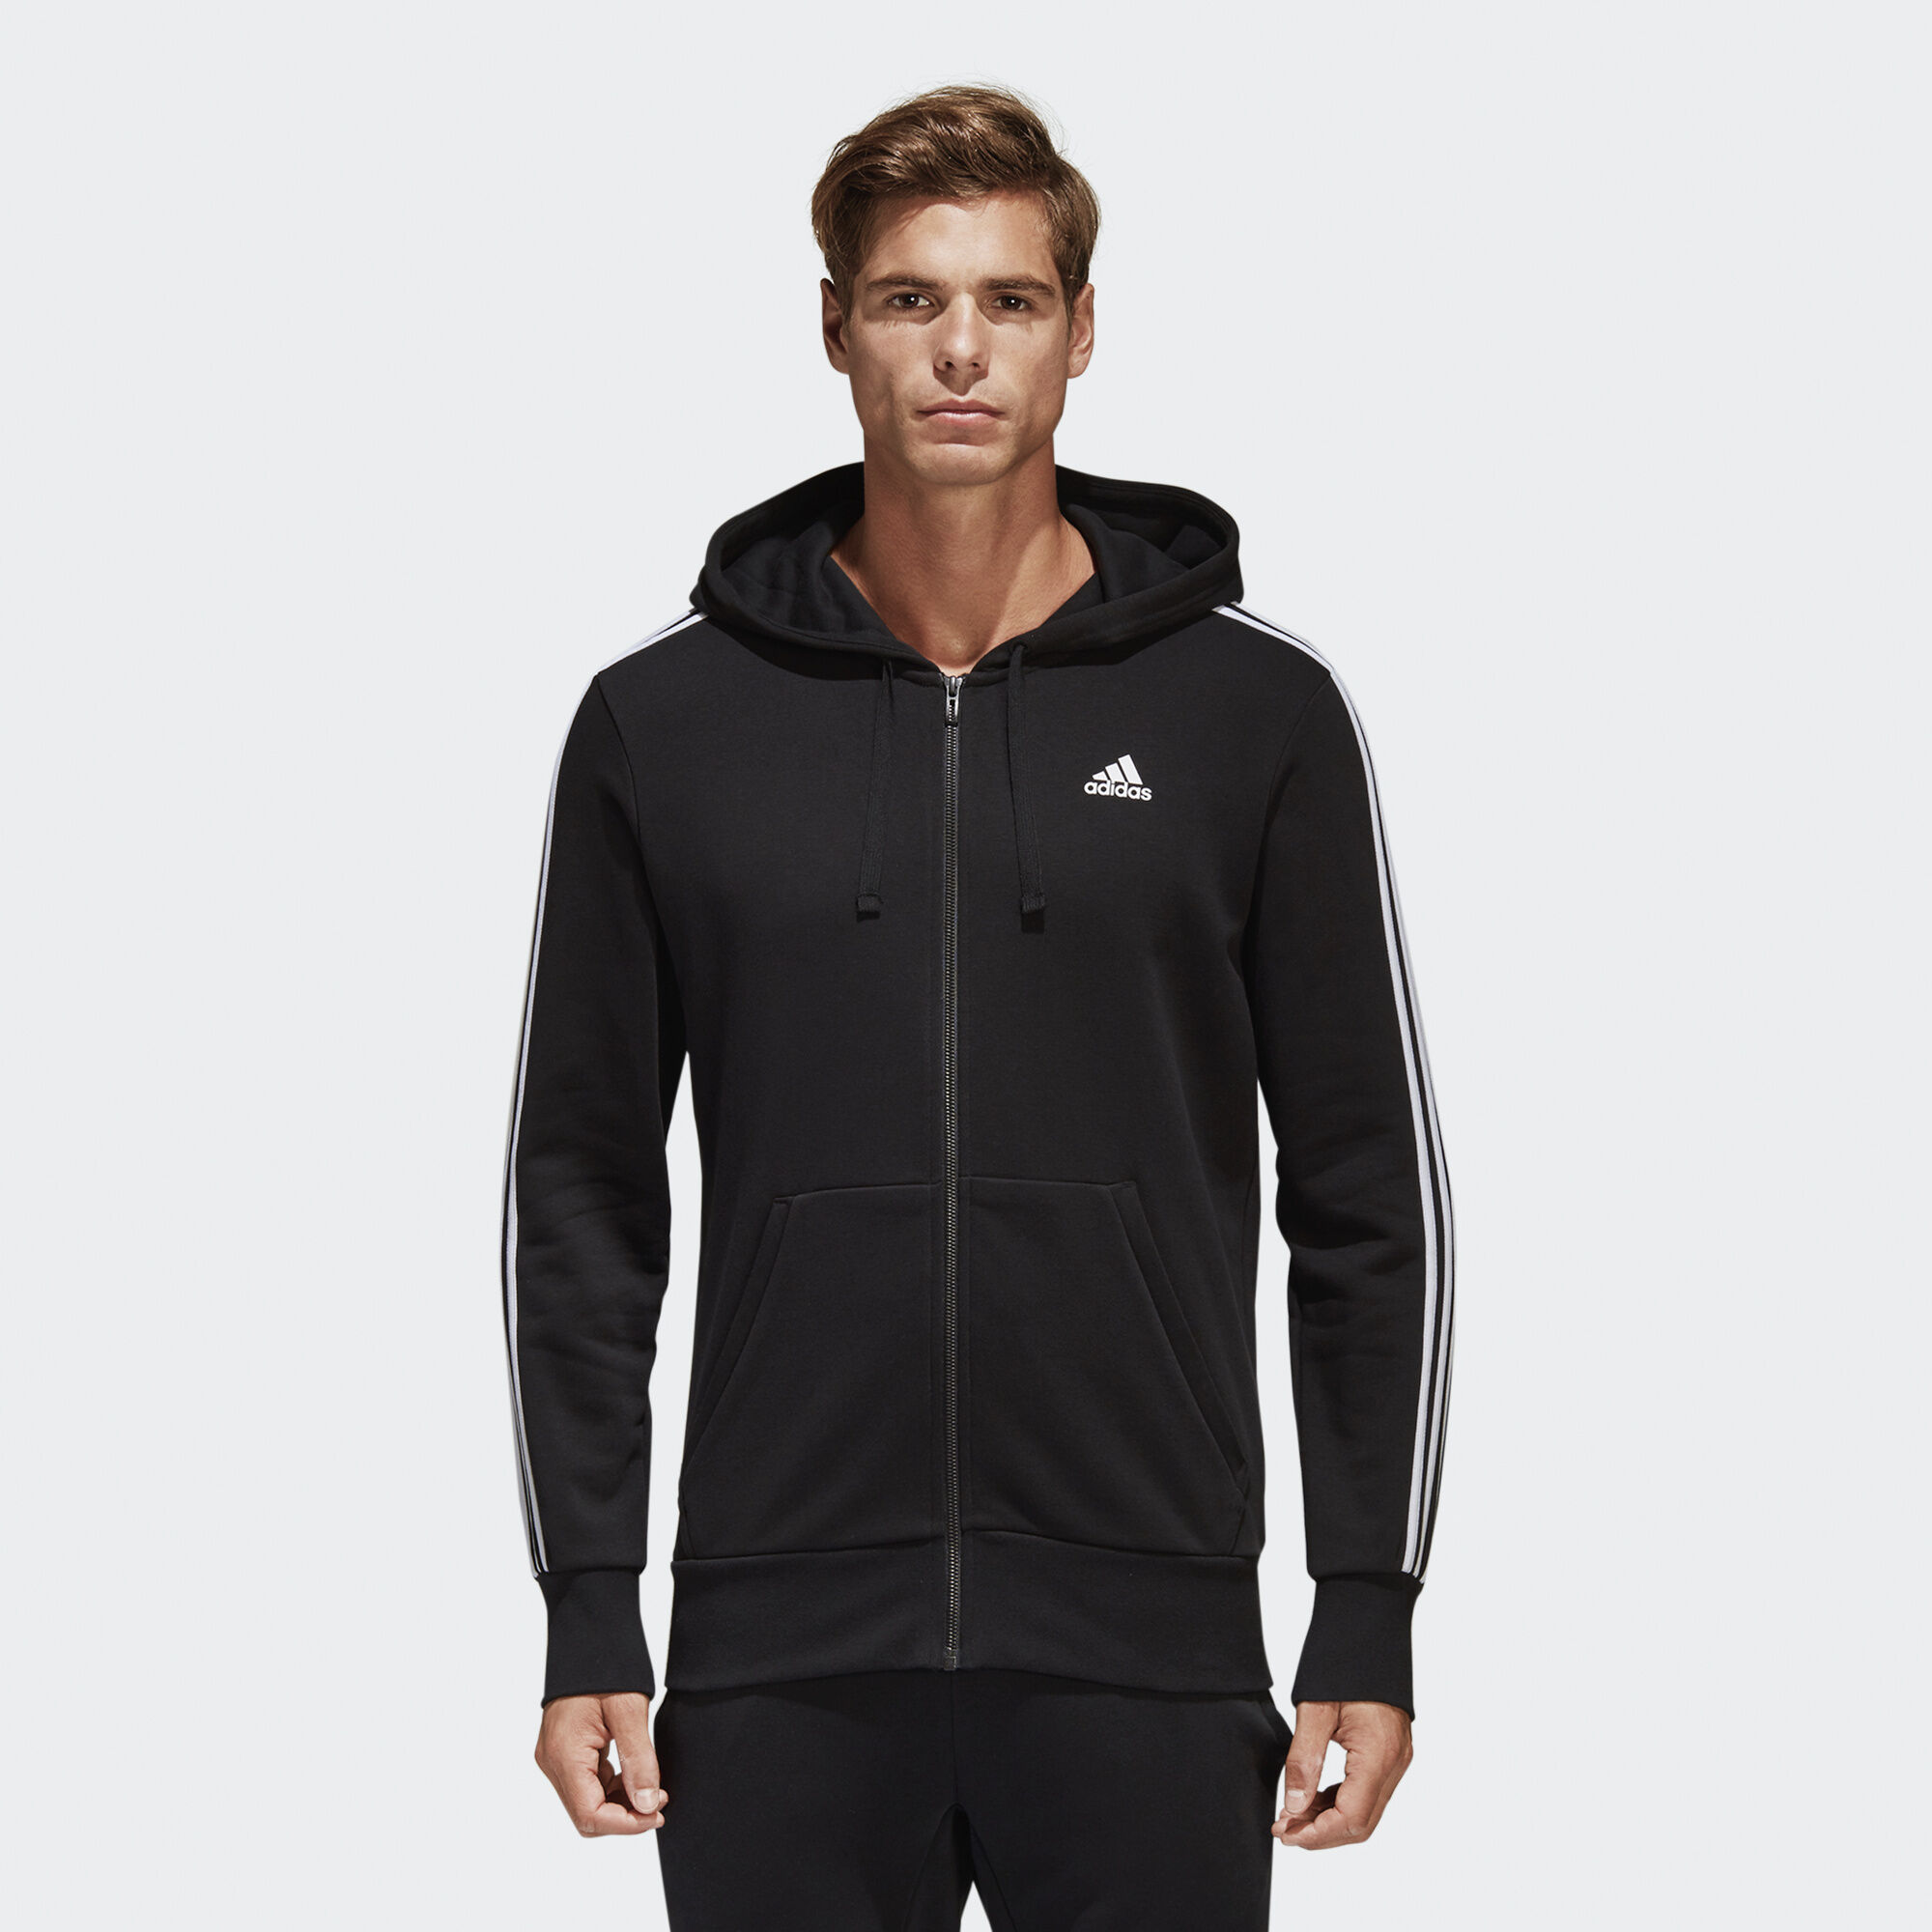 veste adidas d pb hooded zip,adidas hollow full zip hooded